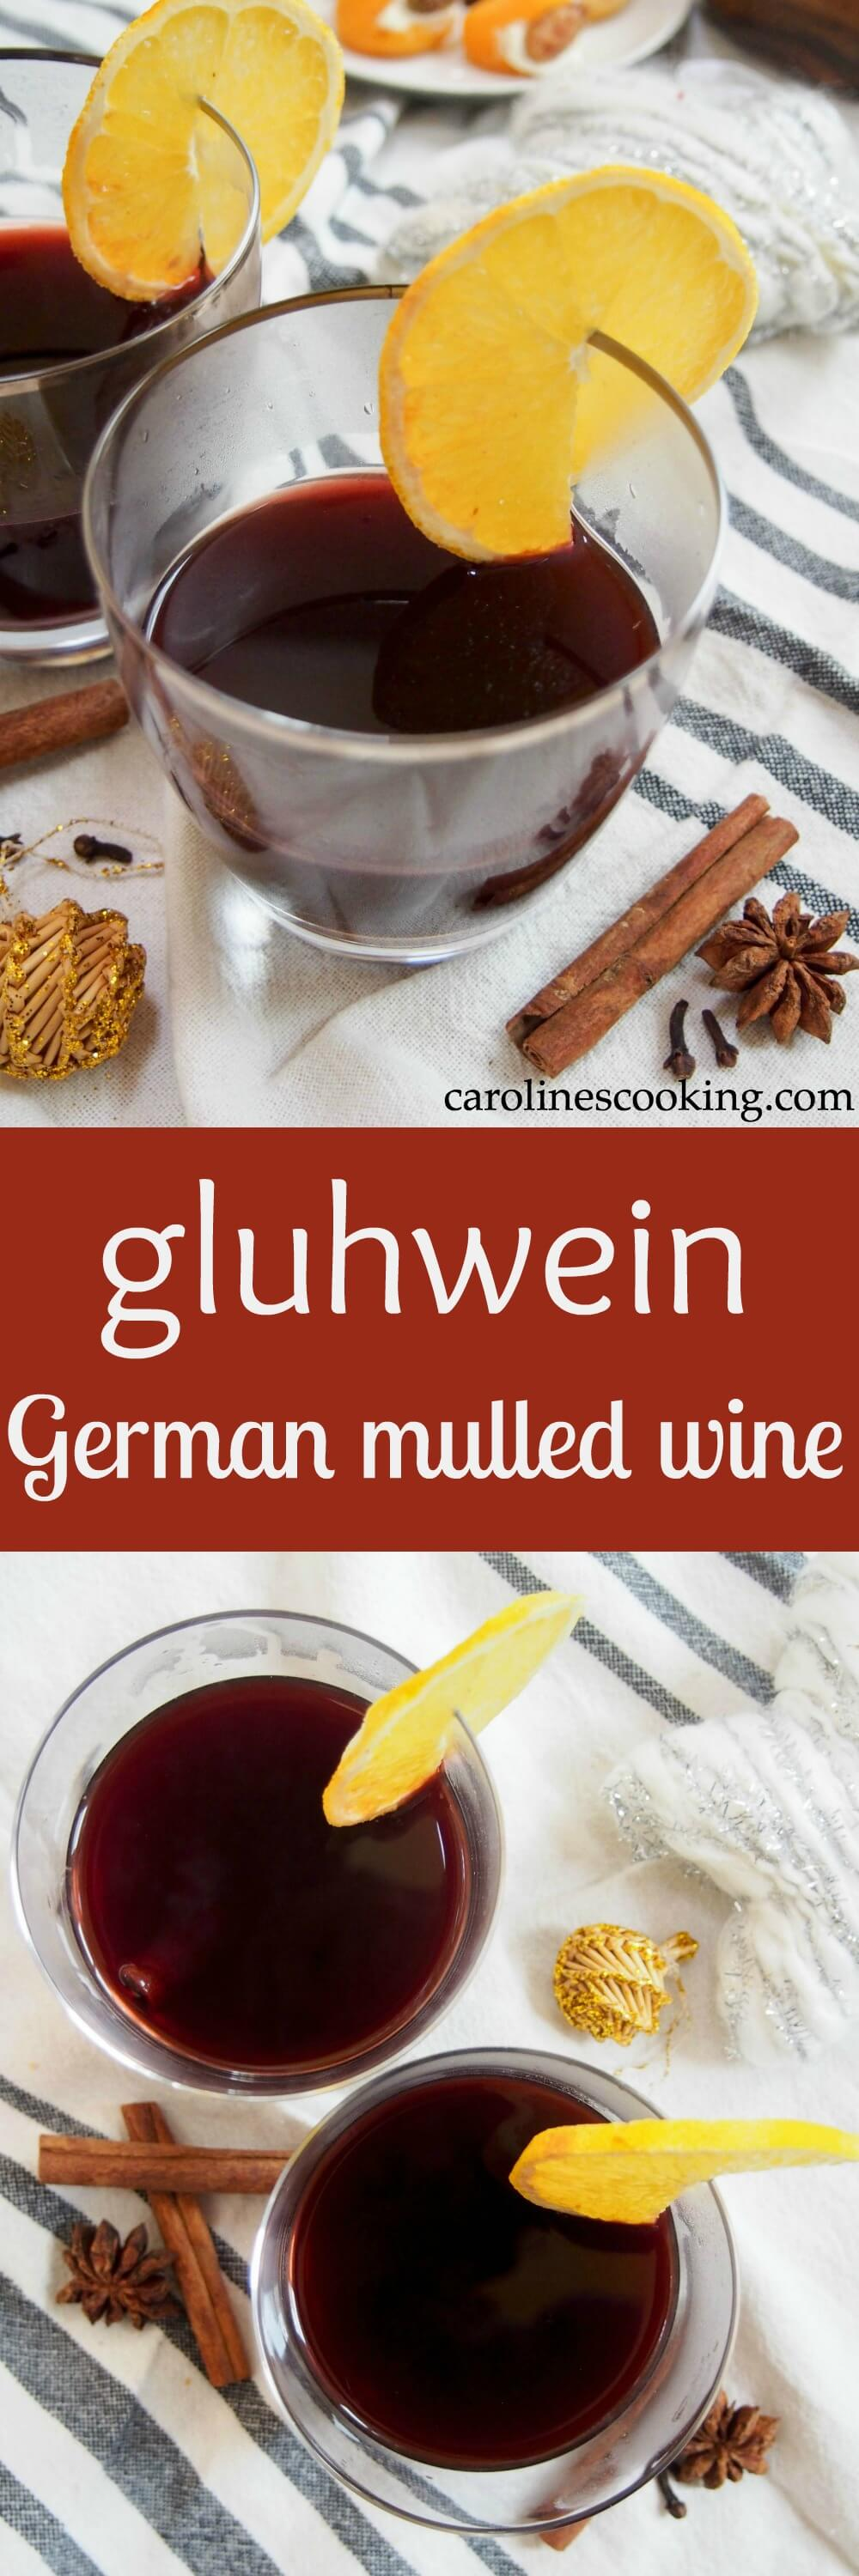 Gluhwein, German mulled wine, is a gently sweet, warmly spiced drink as found at Christmas markets. It's perfect for sharing and to warm you up on a cold day. #mulledwine #cocktail #warmbeverage